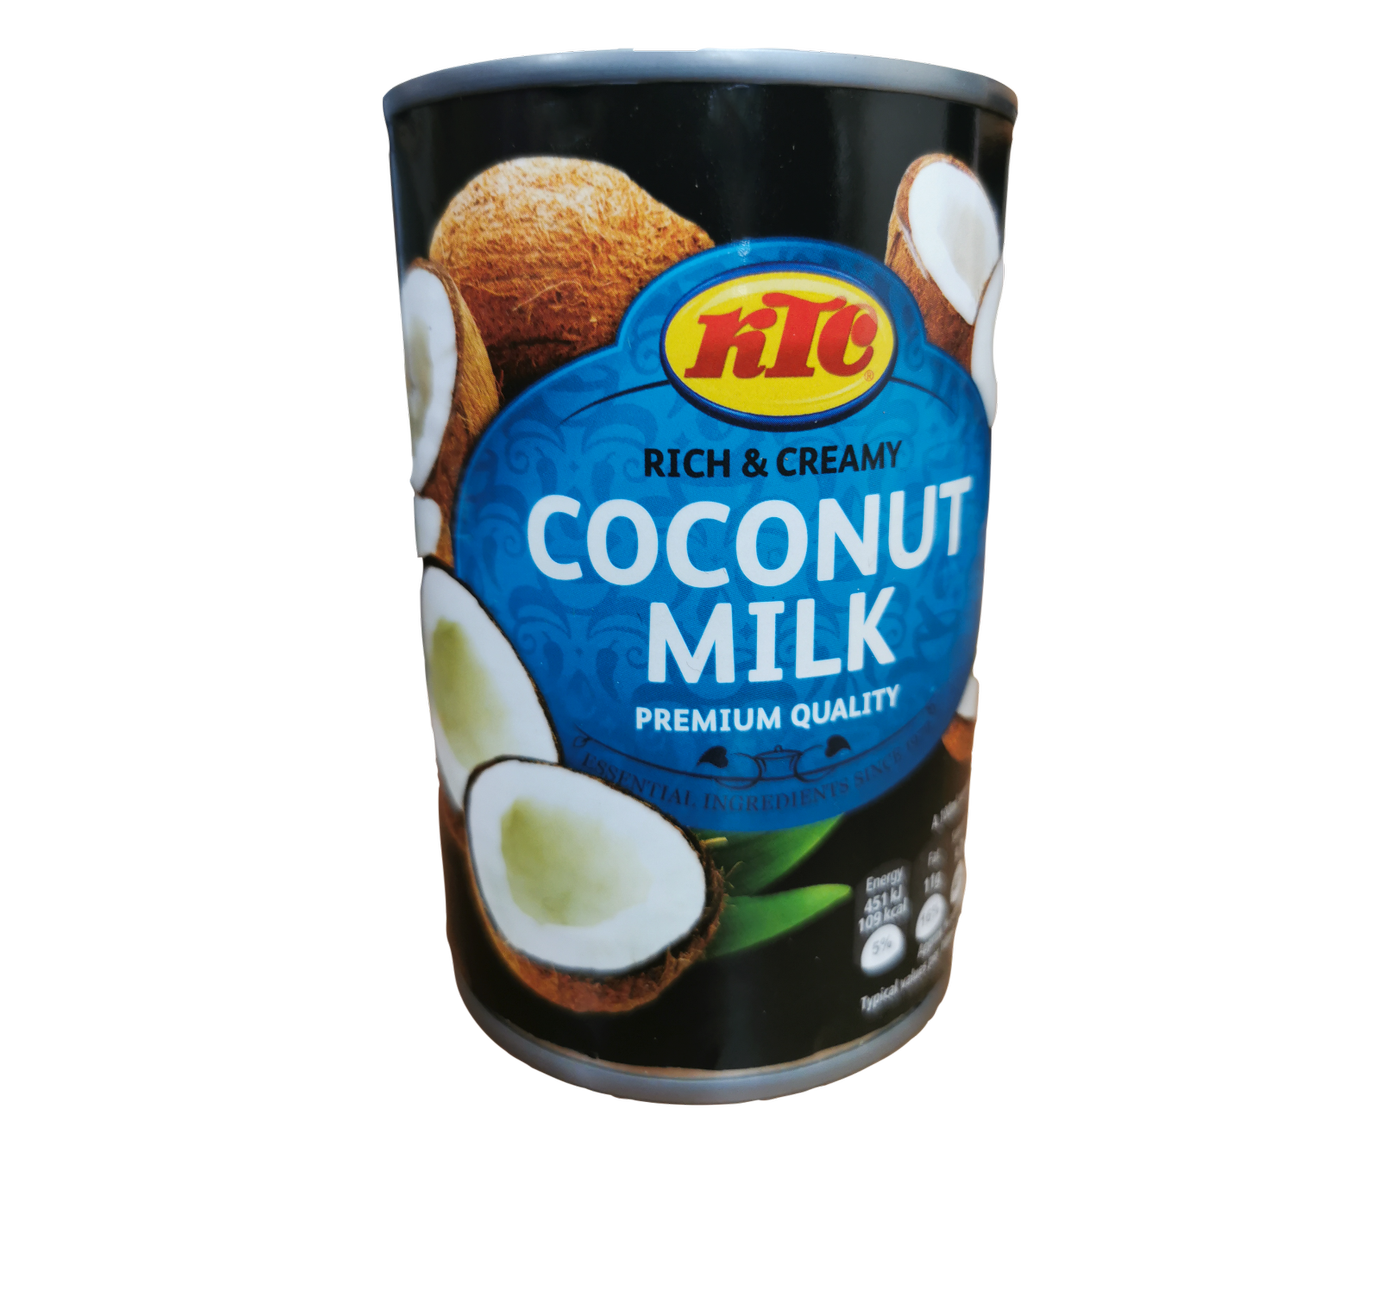 KTC Coconut Milk